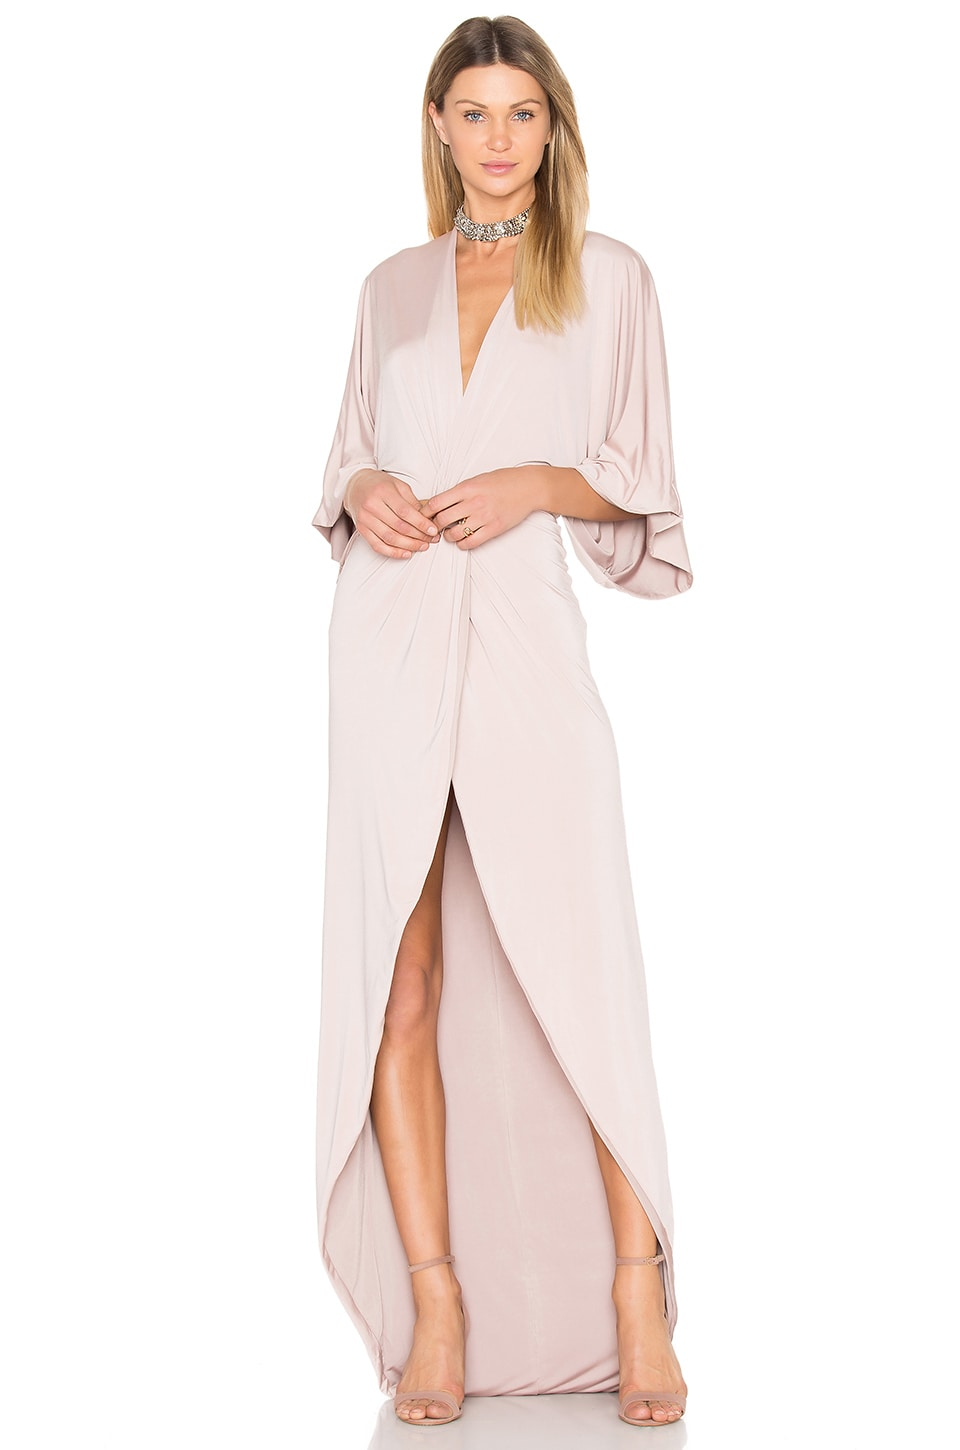 Gemeli Power Peche Robe Gown in Latte